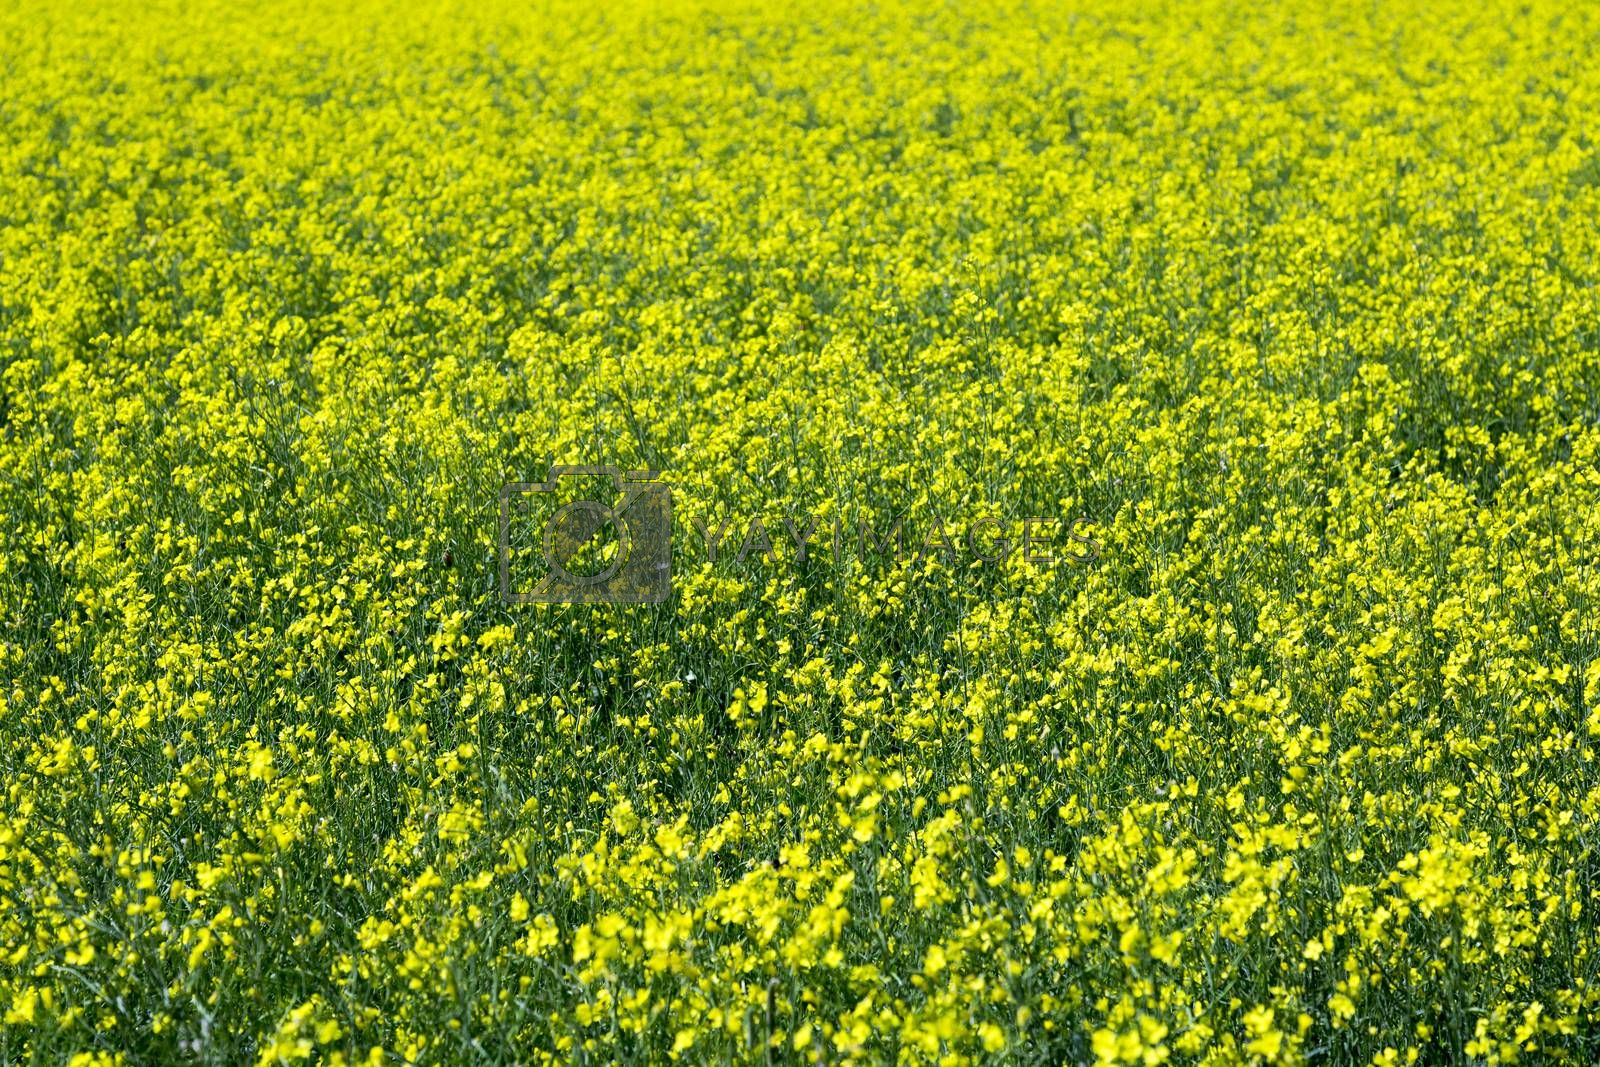 Entire Field of Rapeseed blossoming in yellow flowers.